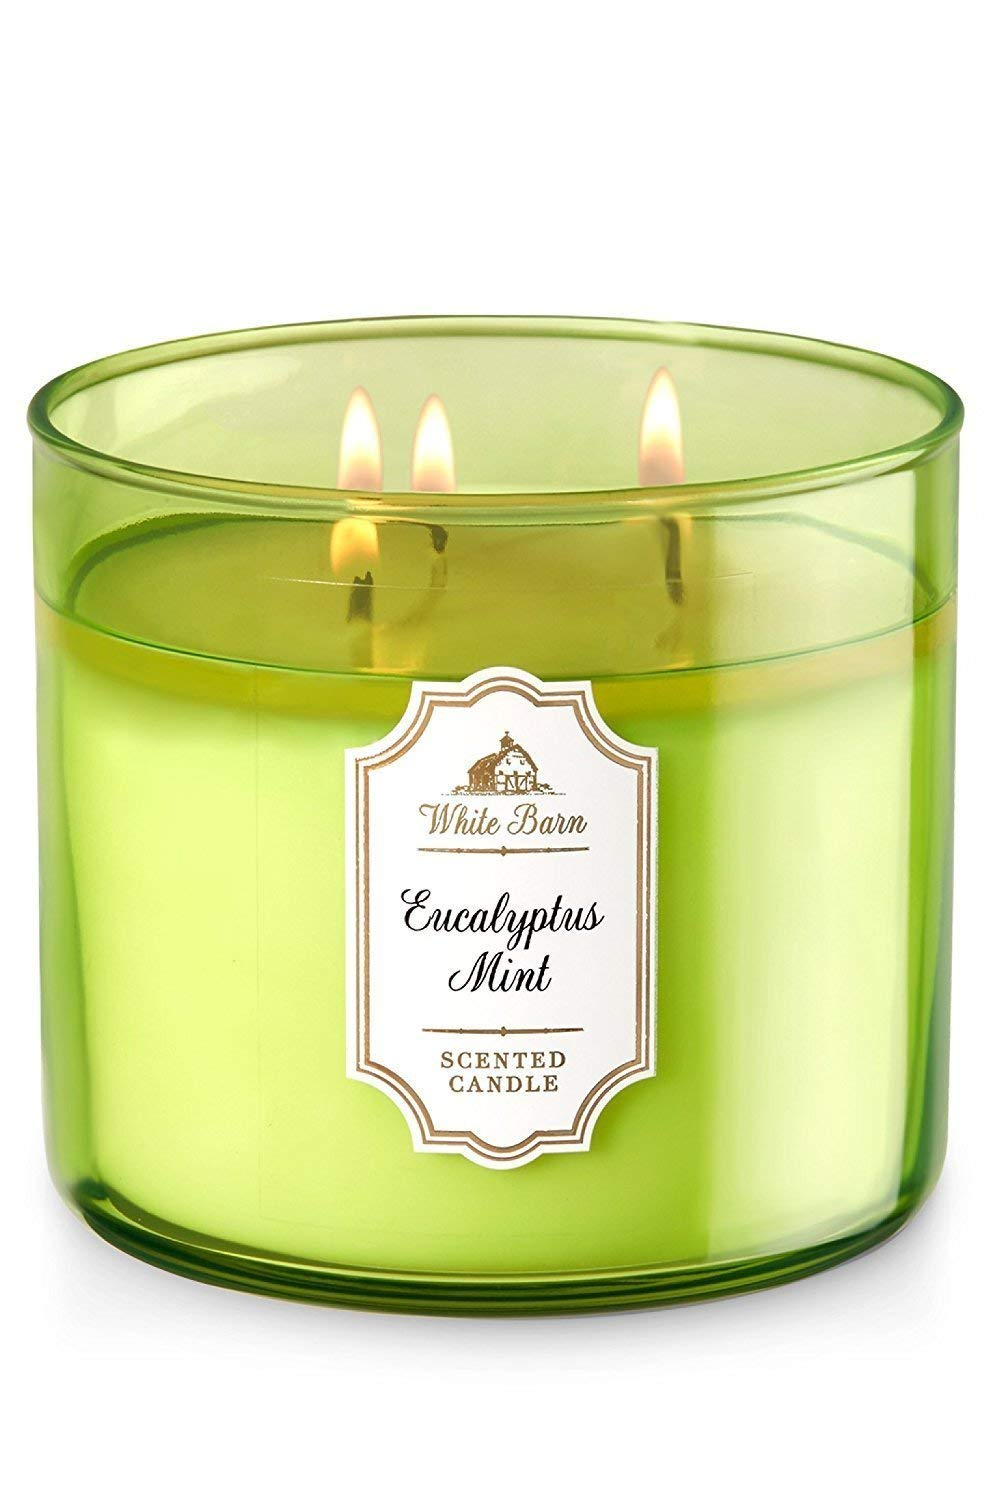 White Barn Bath & Body Works Eucalyptus Mint Scented 3 Wick Candle (Pack of Two)